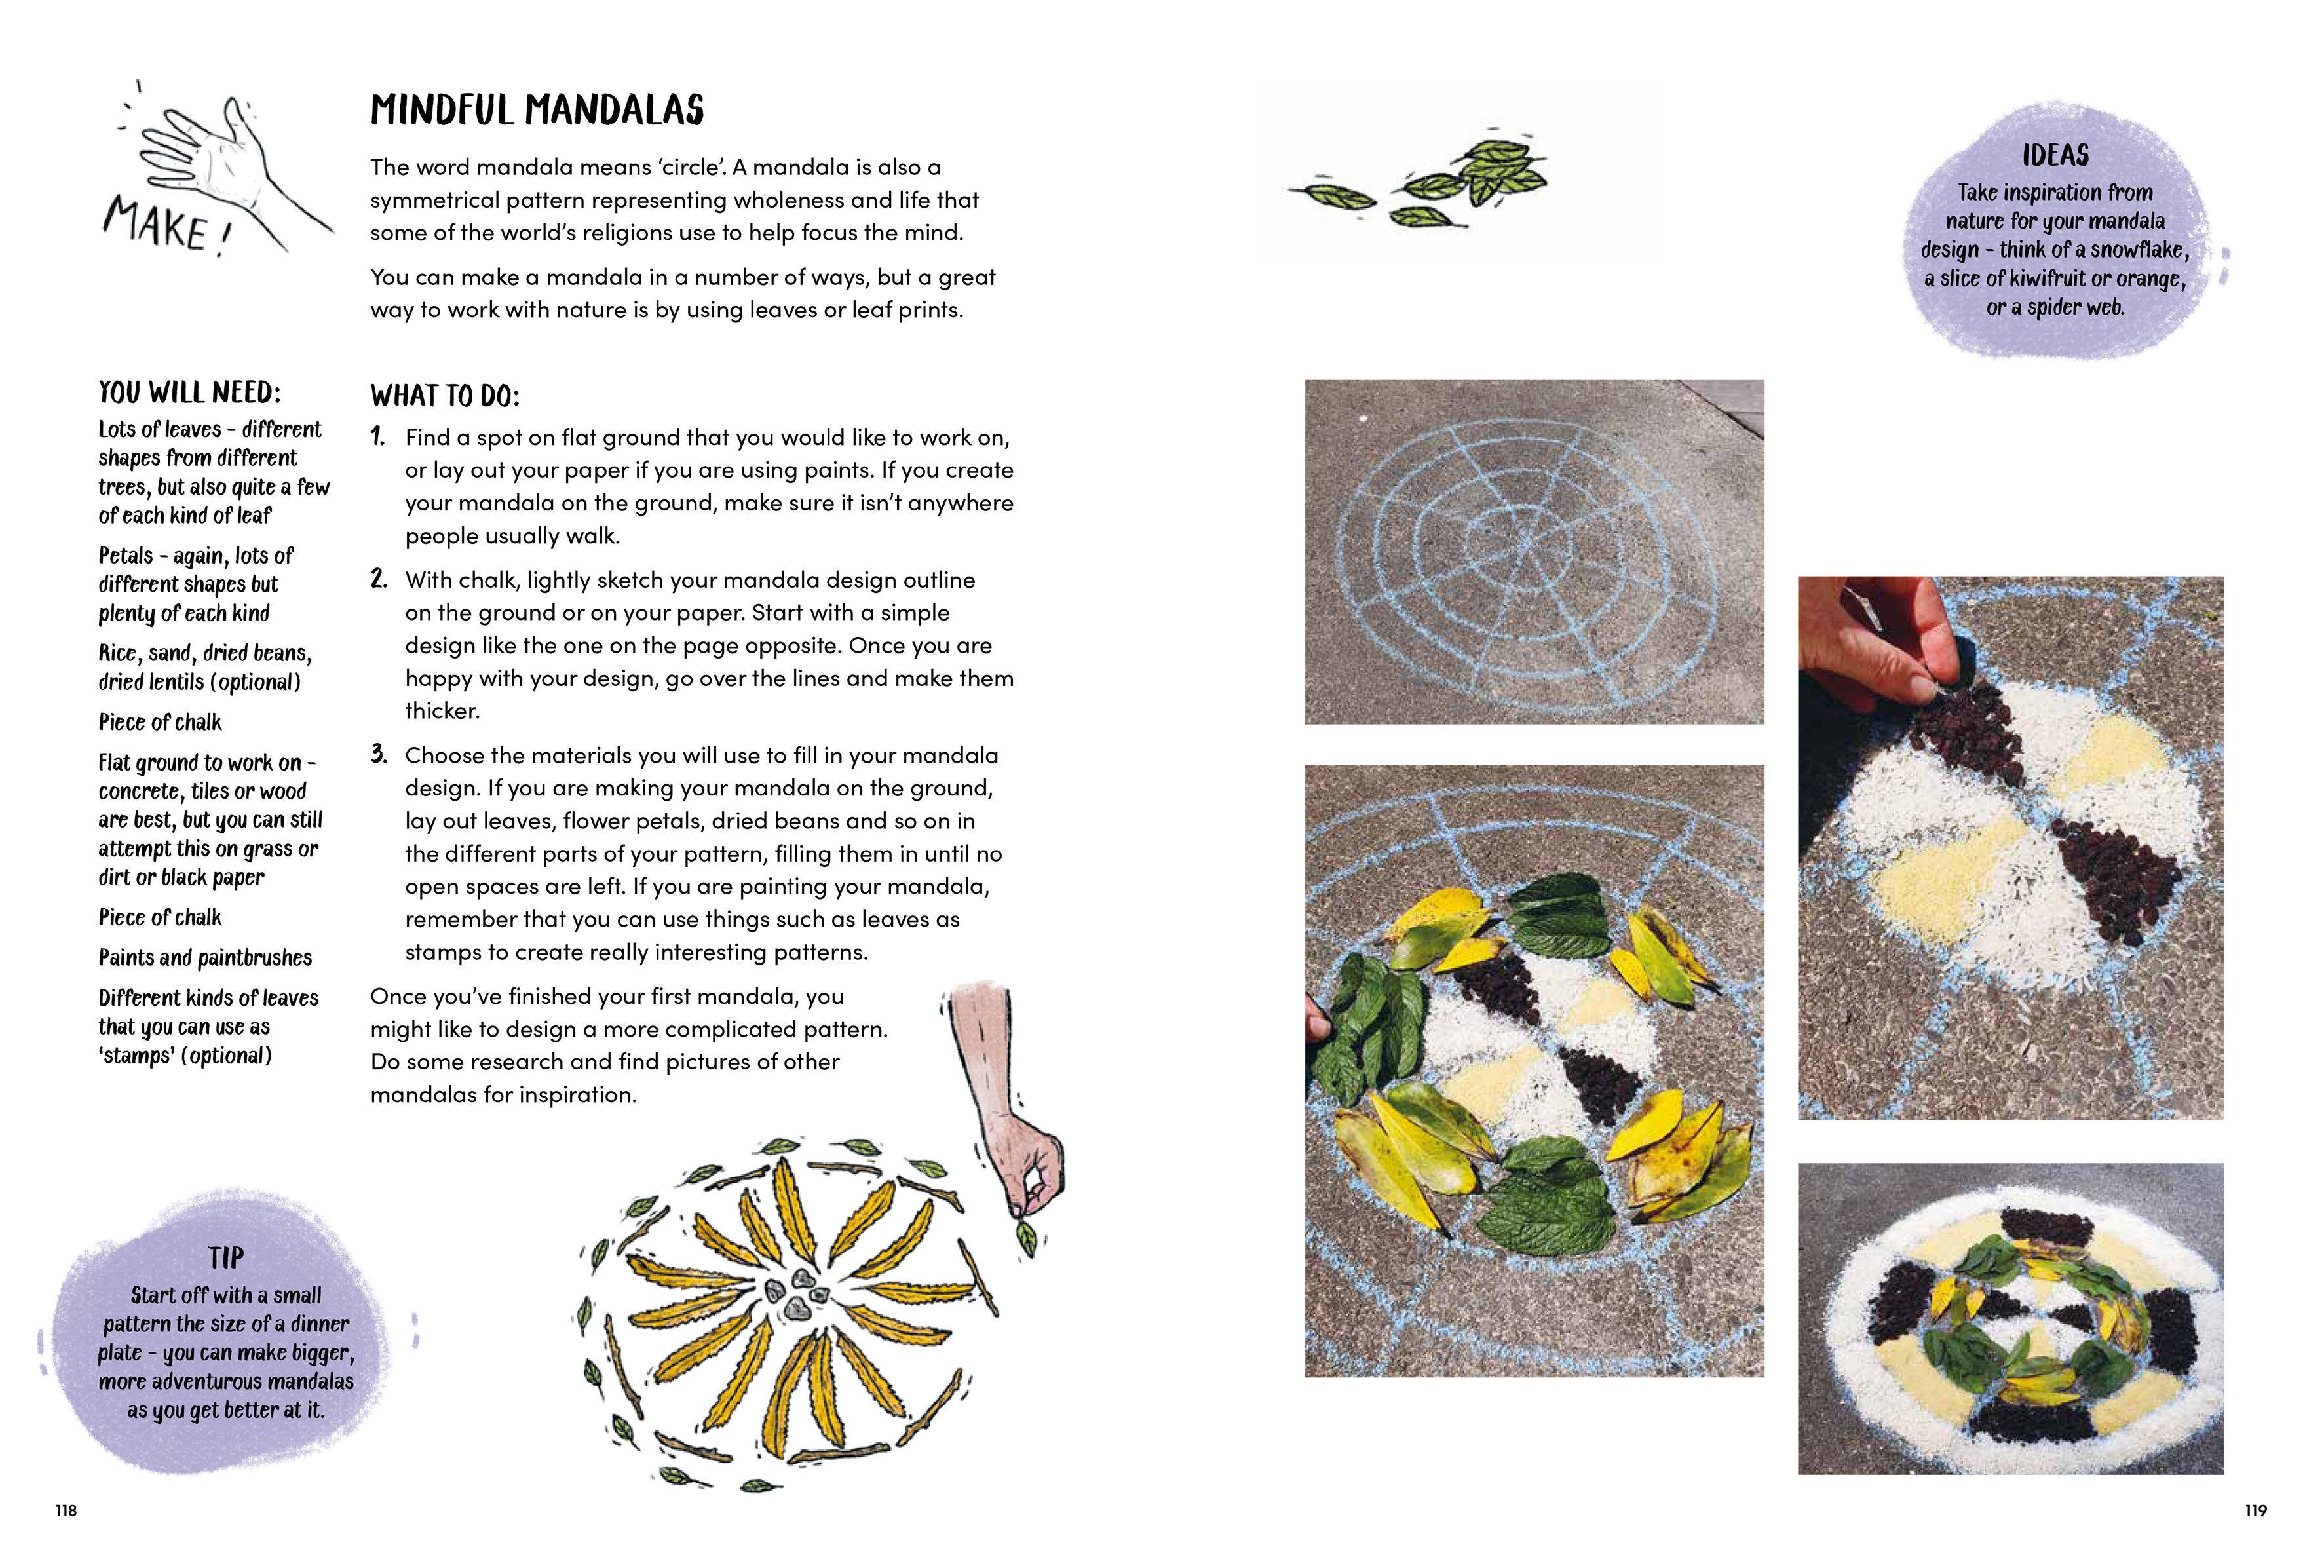 The Nature Activity Book_Mindful mandalas.jpg